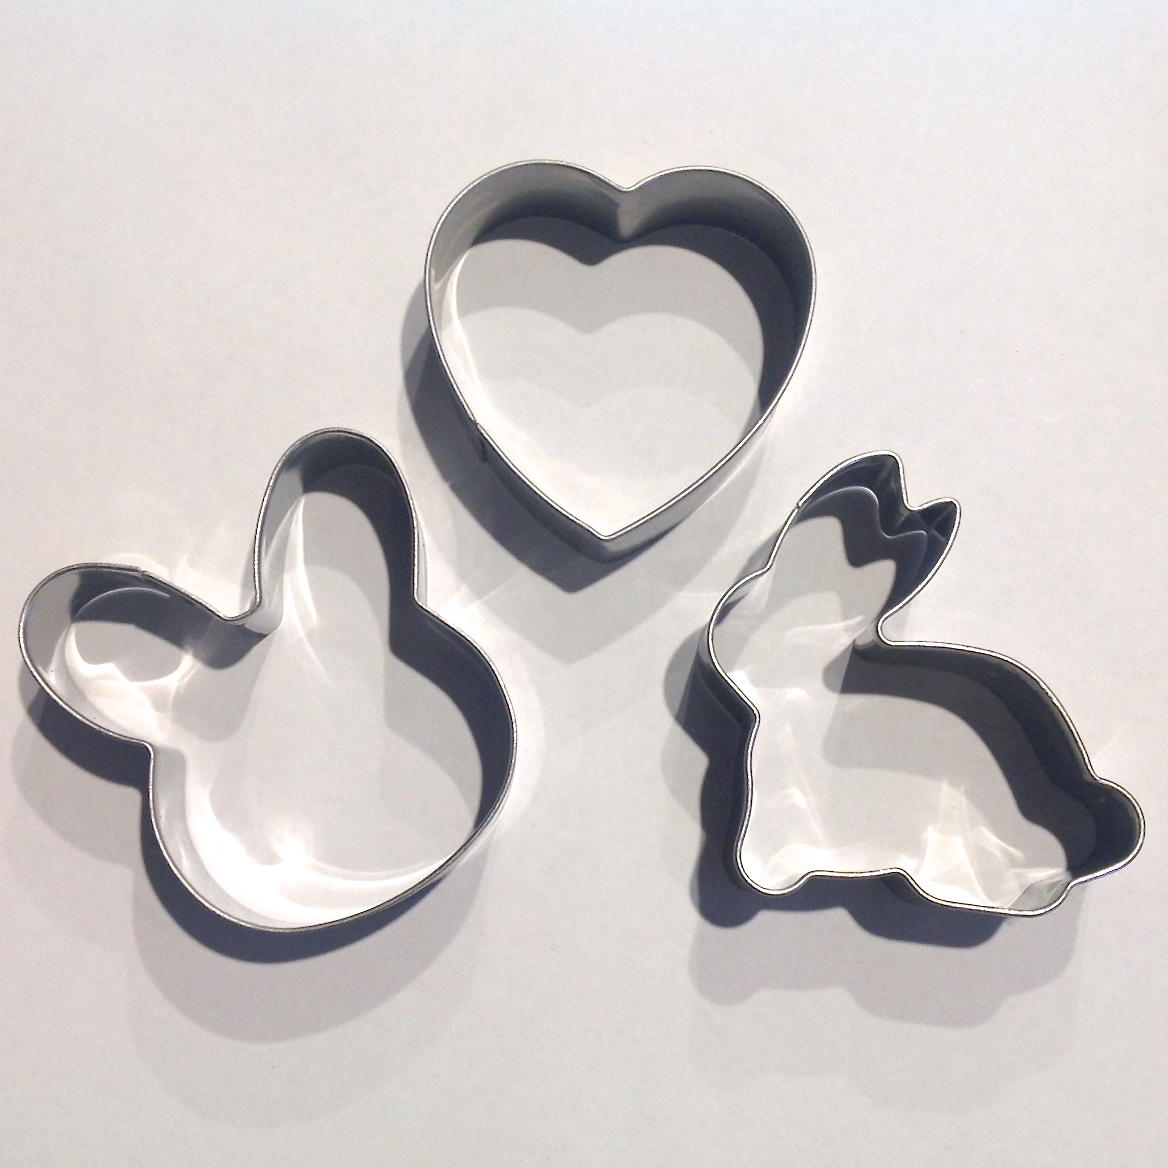 Easter Rabbit Small Cookie Cutter Set Cuttercraft